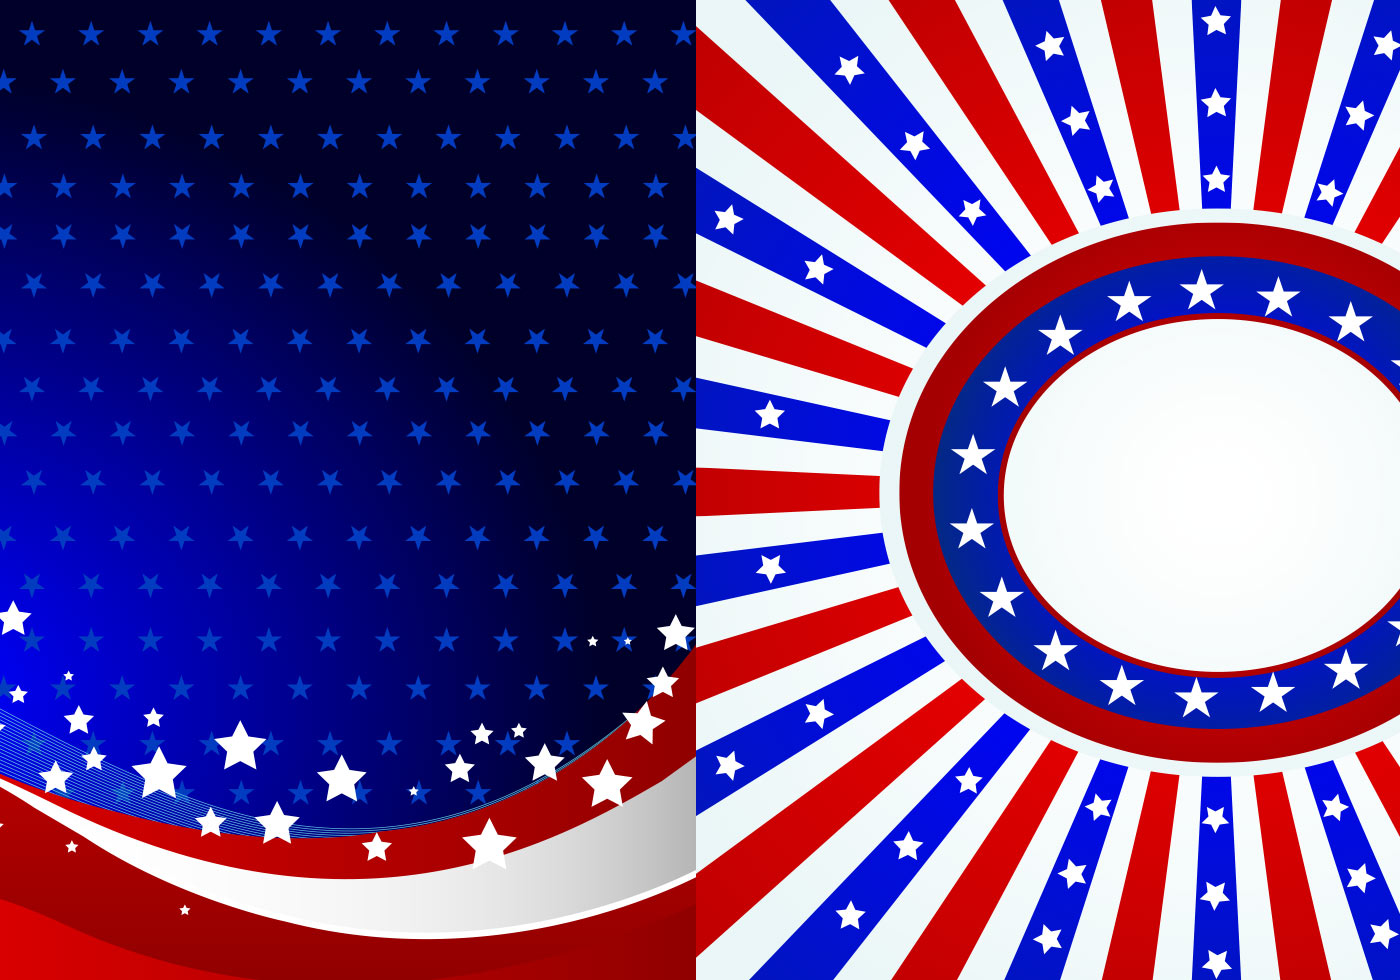 4th of July Wallpaper Vector Pack 31382 - Download Free ...